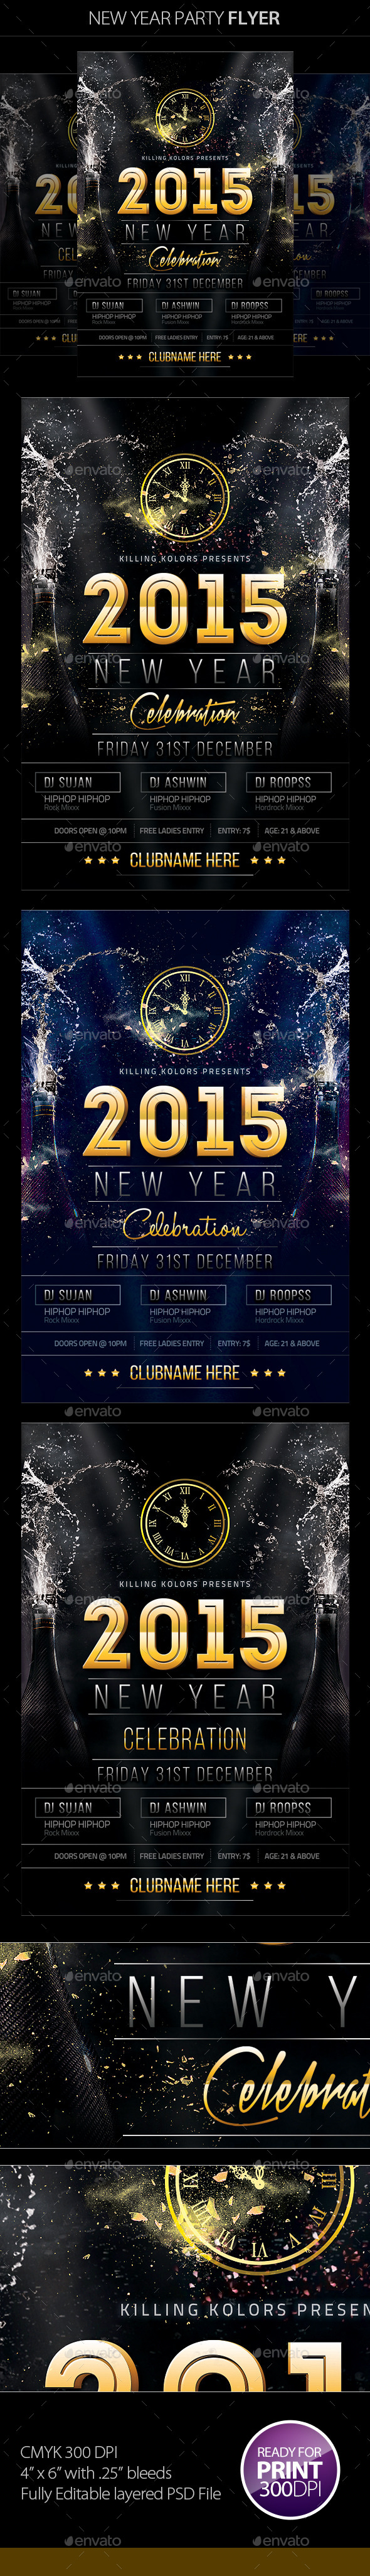 GraphicRiver New Year Party Flyer 9503050